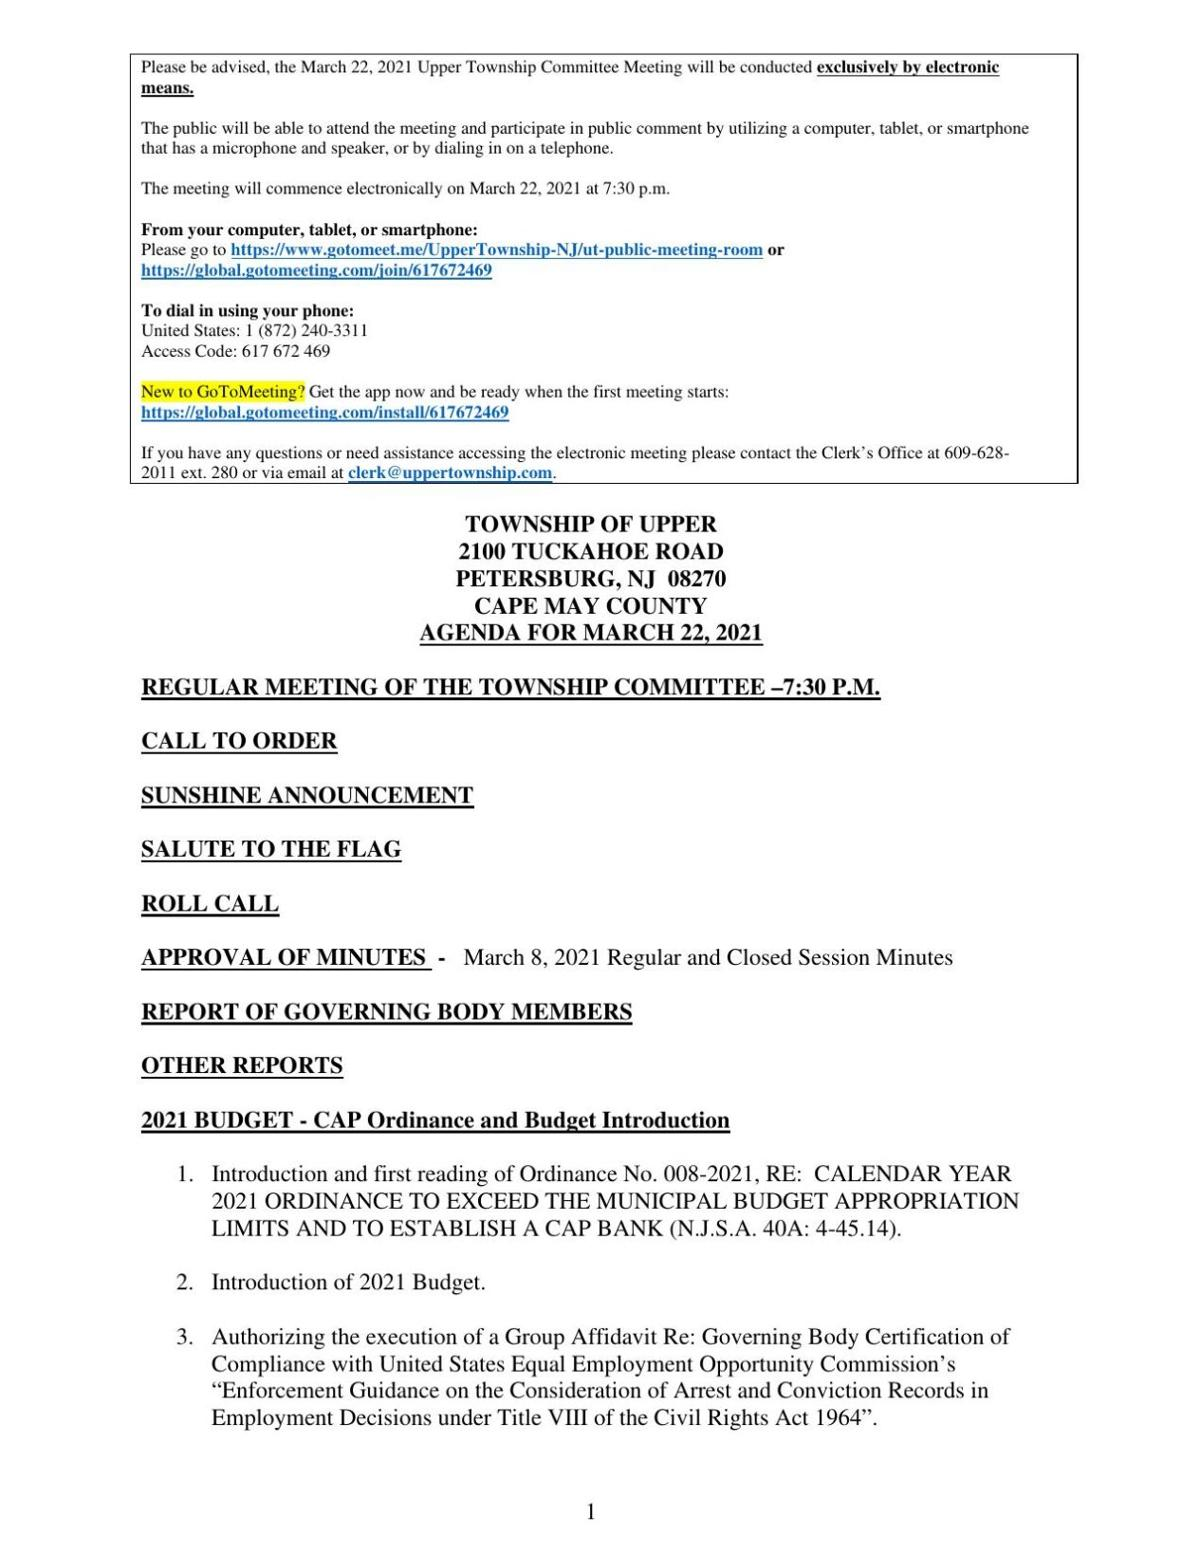 Upper Township Committee Meeting Agenda March 22, 2021